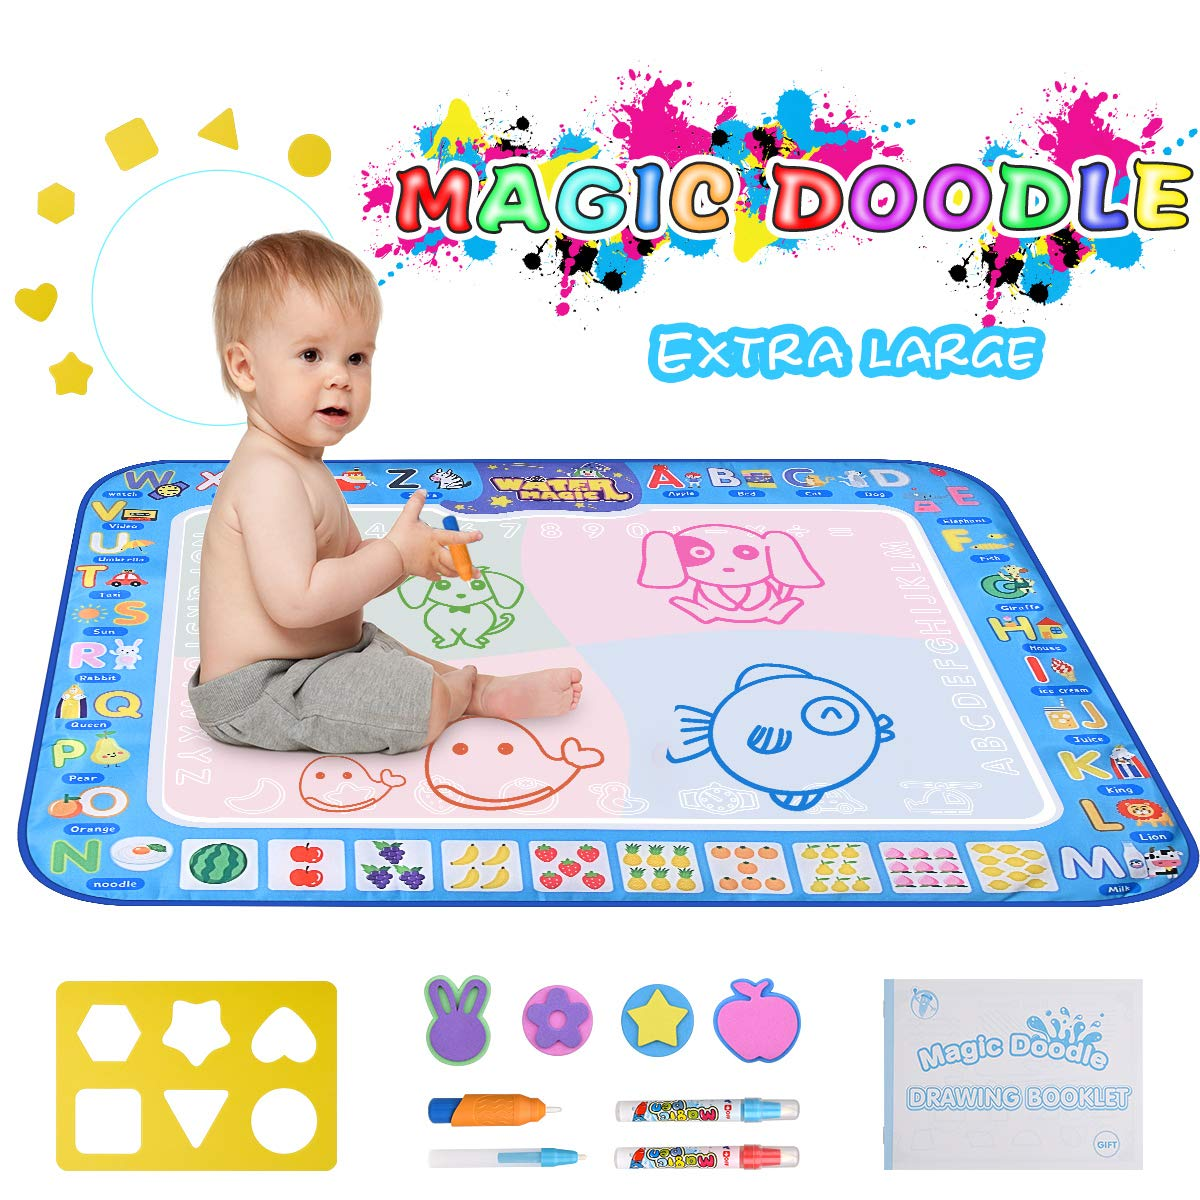 31.5 X 23.6 pipigo Water Doodle Mat Large Size for 2-3 Kids Kid Aqua Magic Drawing Mat Coloring Paint Pad for Toddlers with 4 Water Pens and 6 Models